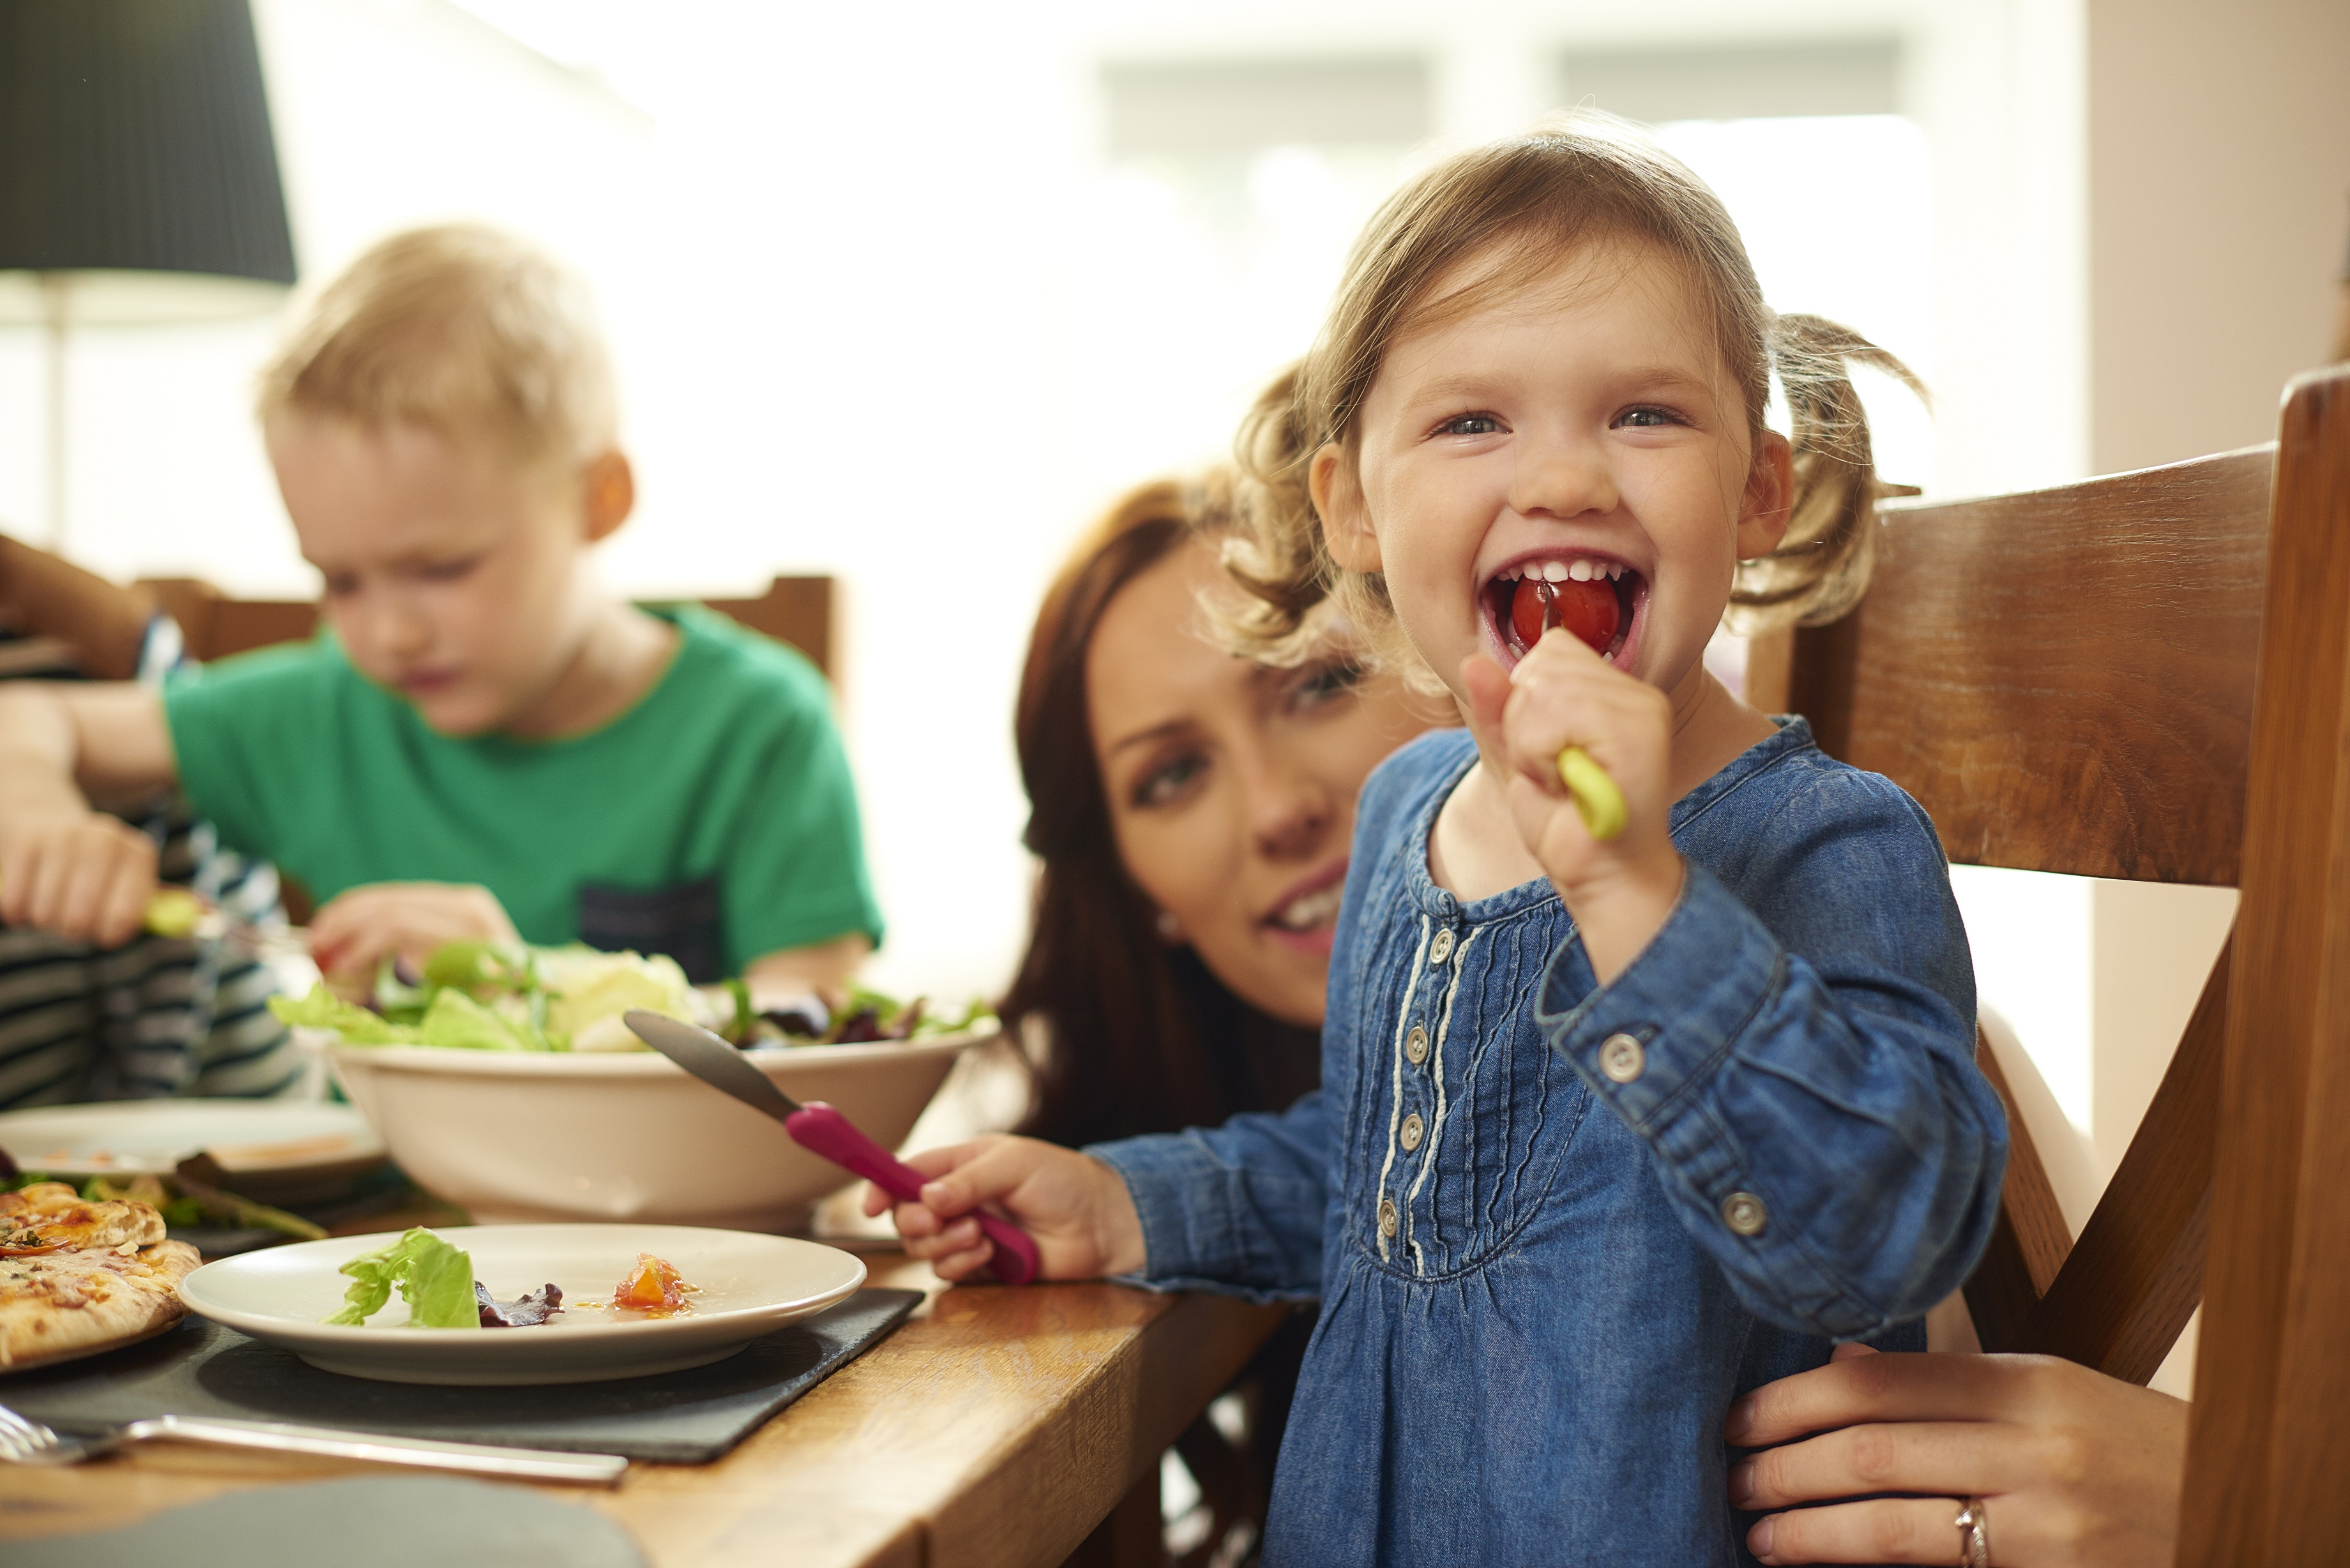 a young family of four sit at the dining table and eat pizza and salad.Mum helps her little girl with her meal , as she cheekily stuffs a whole tomato into her mouth .